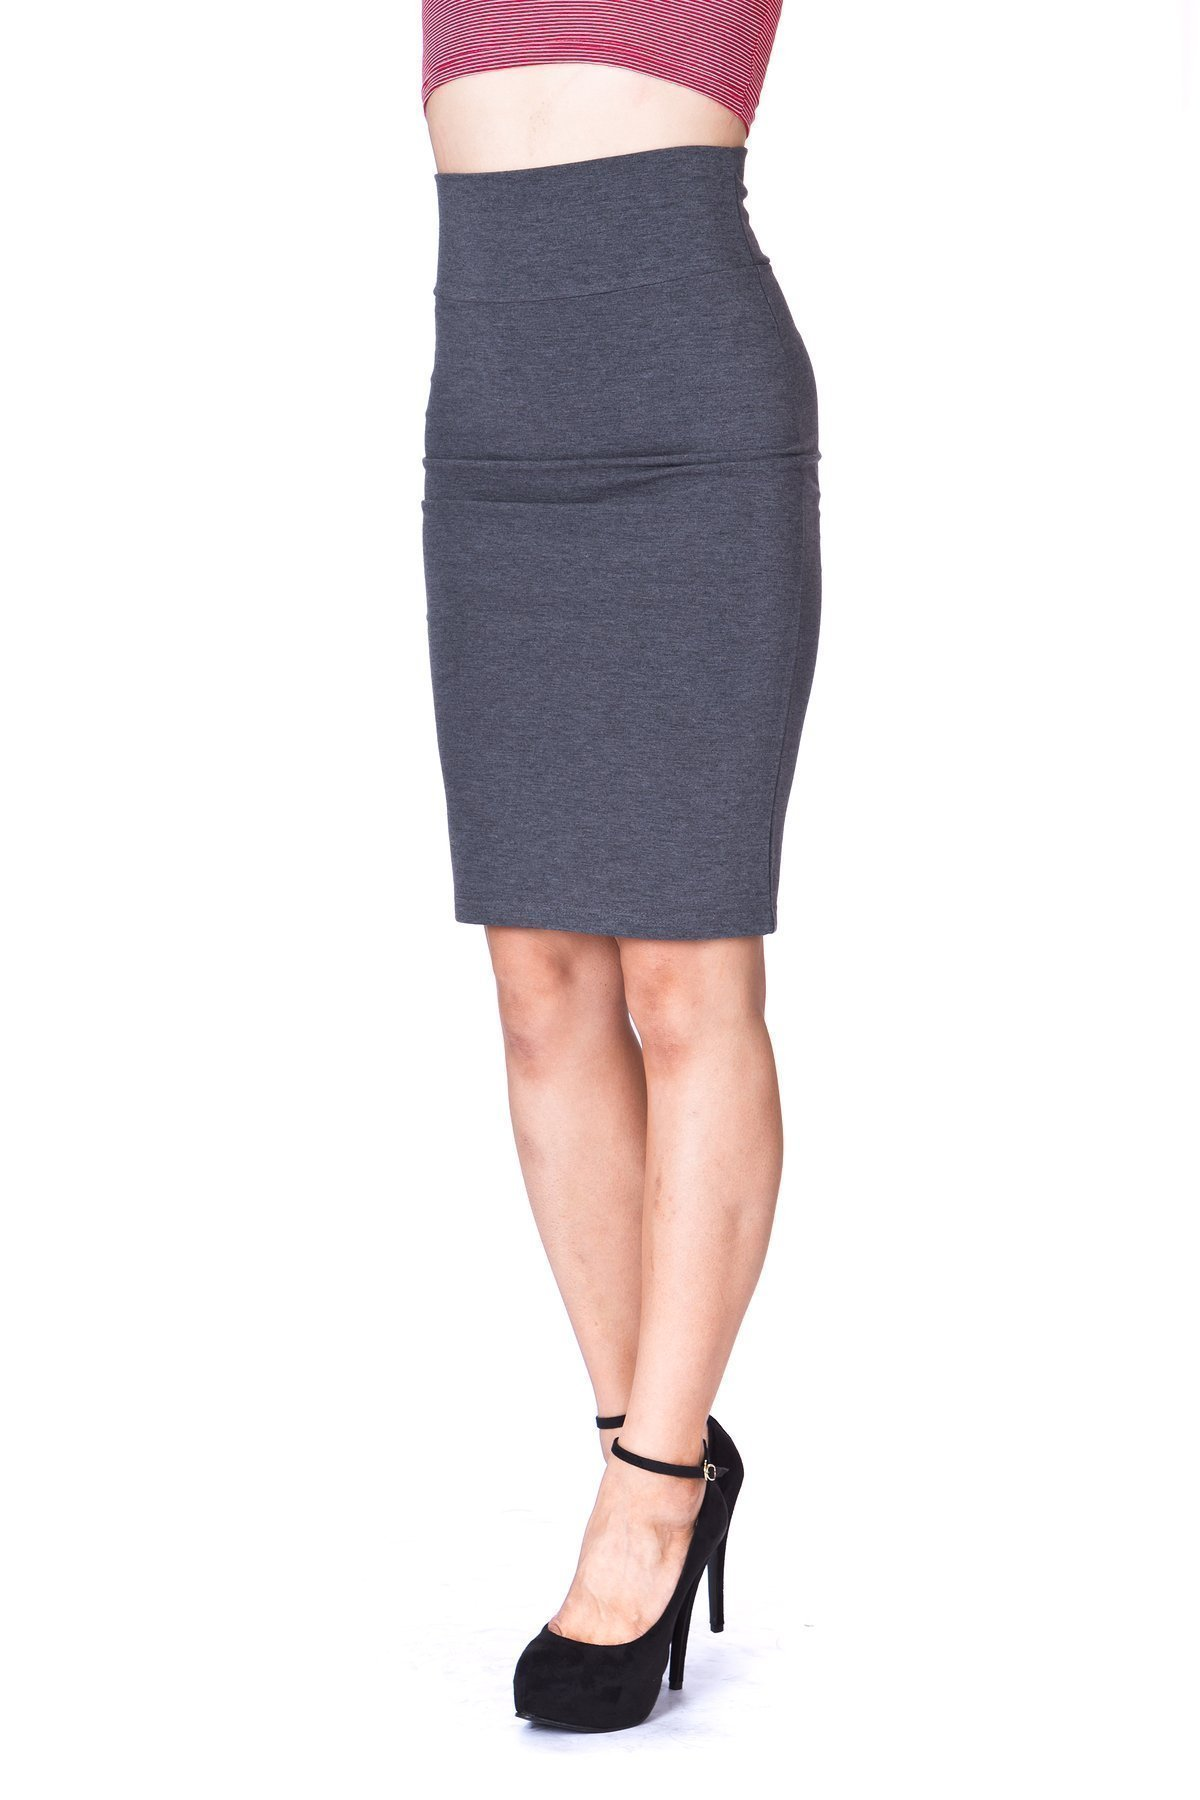 Every Occasion Stretch Pull on Wide High Waist Bodycon Pencil Knee Length Midi Skirt Charcoal 4